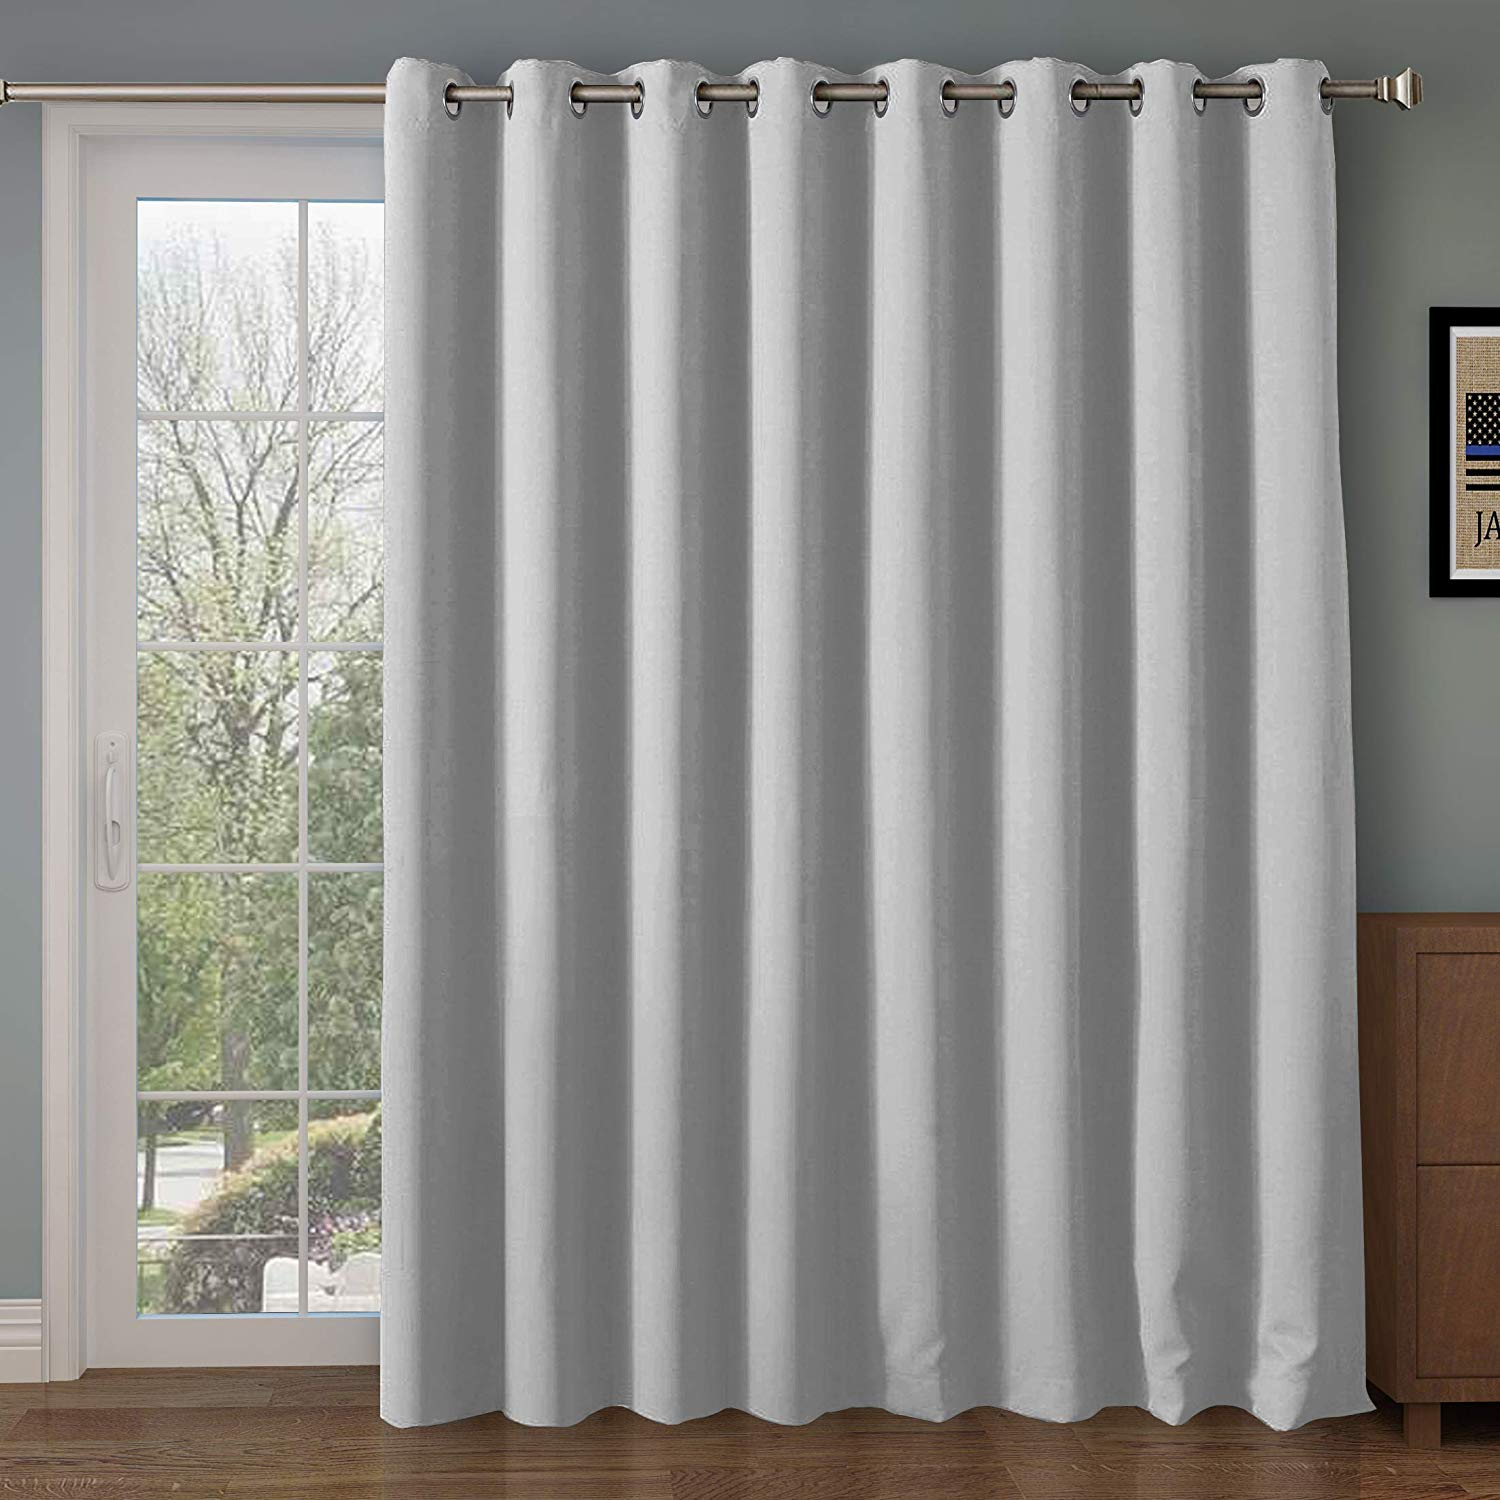 Http://mipente/03eo5ck/dh577xf/ 2019 04 21t10:56:02+ Regarding Sugar Creek Grommet Top Loha Linen Window Curtain Panel Pairs (View 22 of 30)